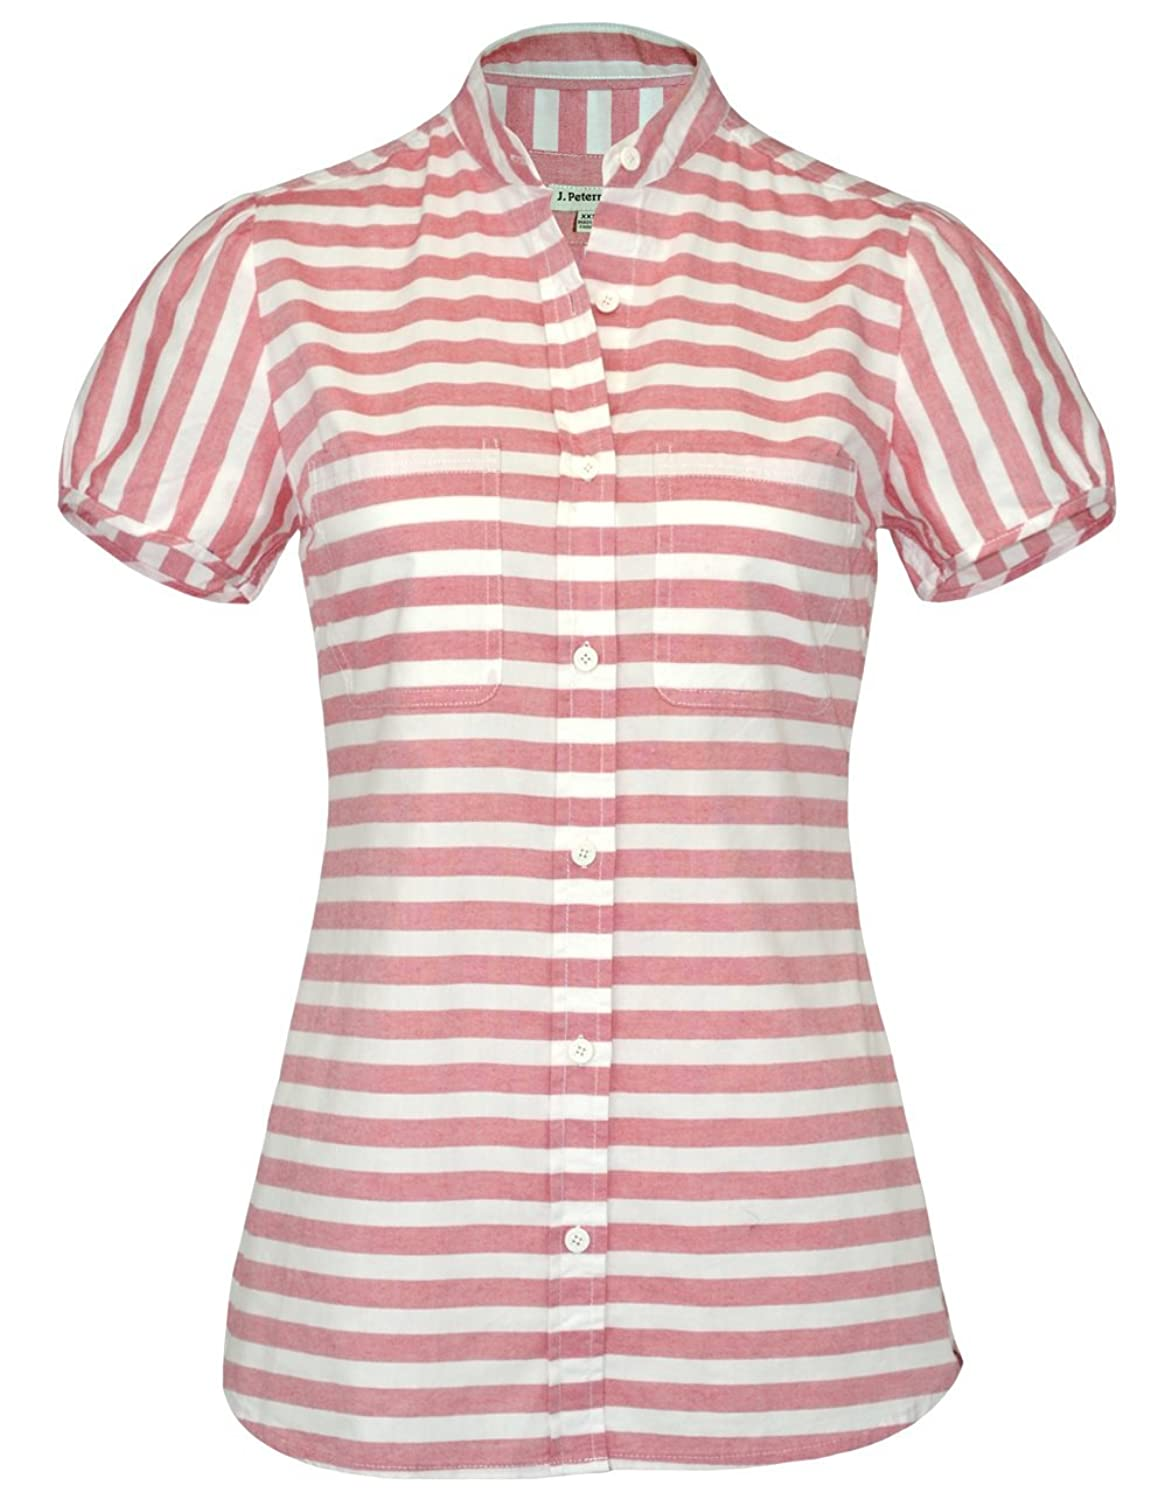 1930s Style Tops, Blouses & Sweaters Nautical Blouse $62.07 AT vintagedancer.com